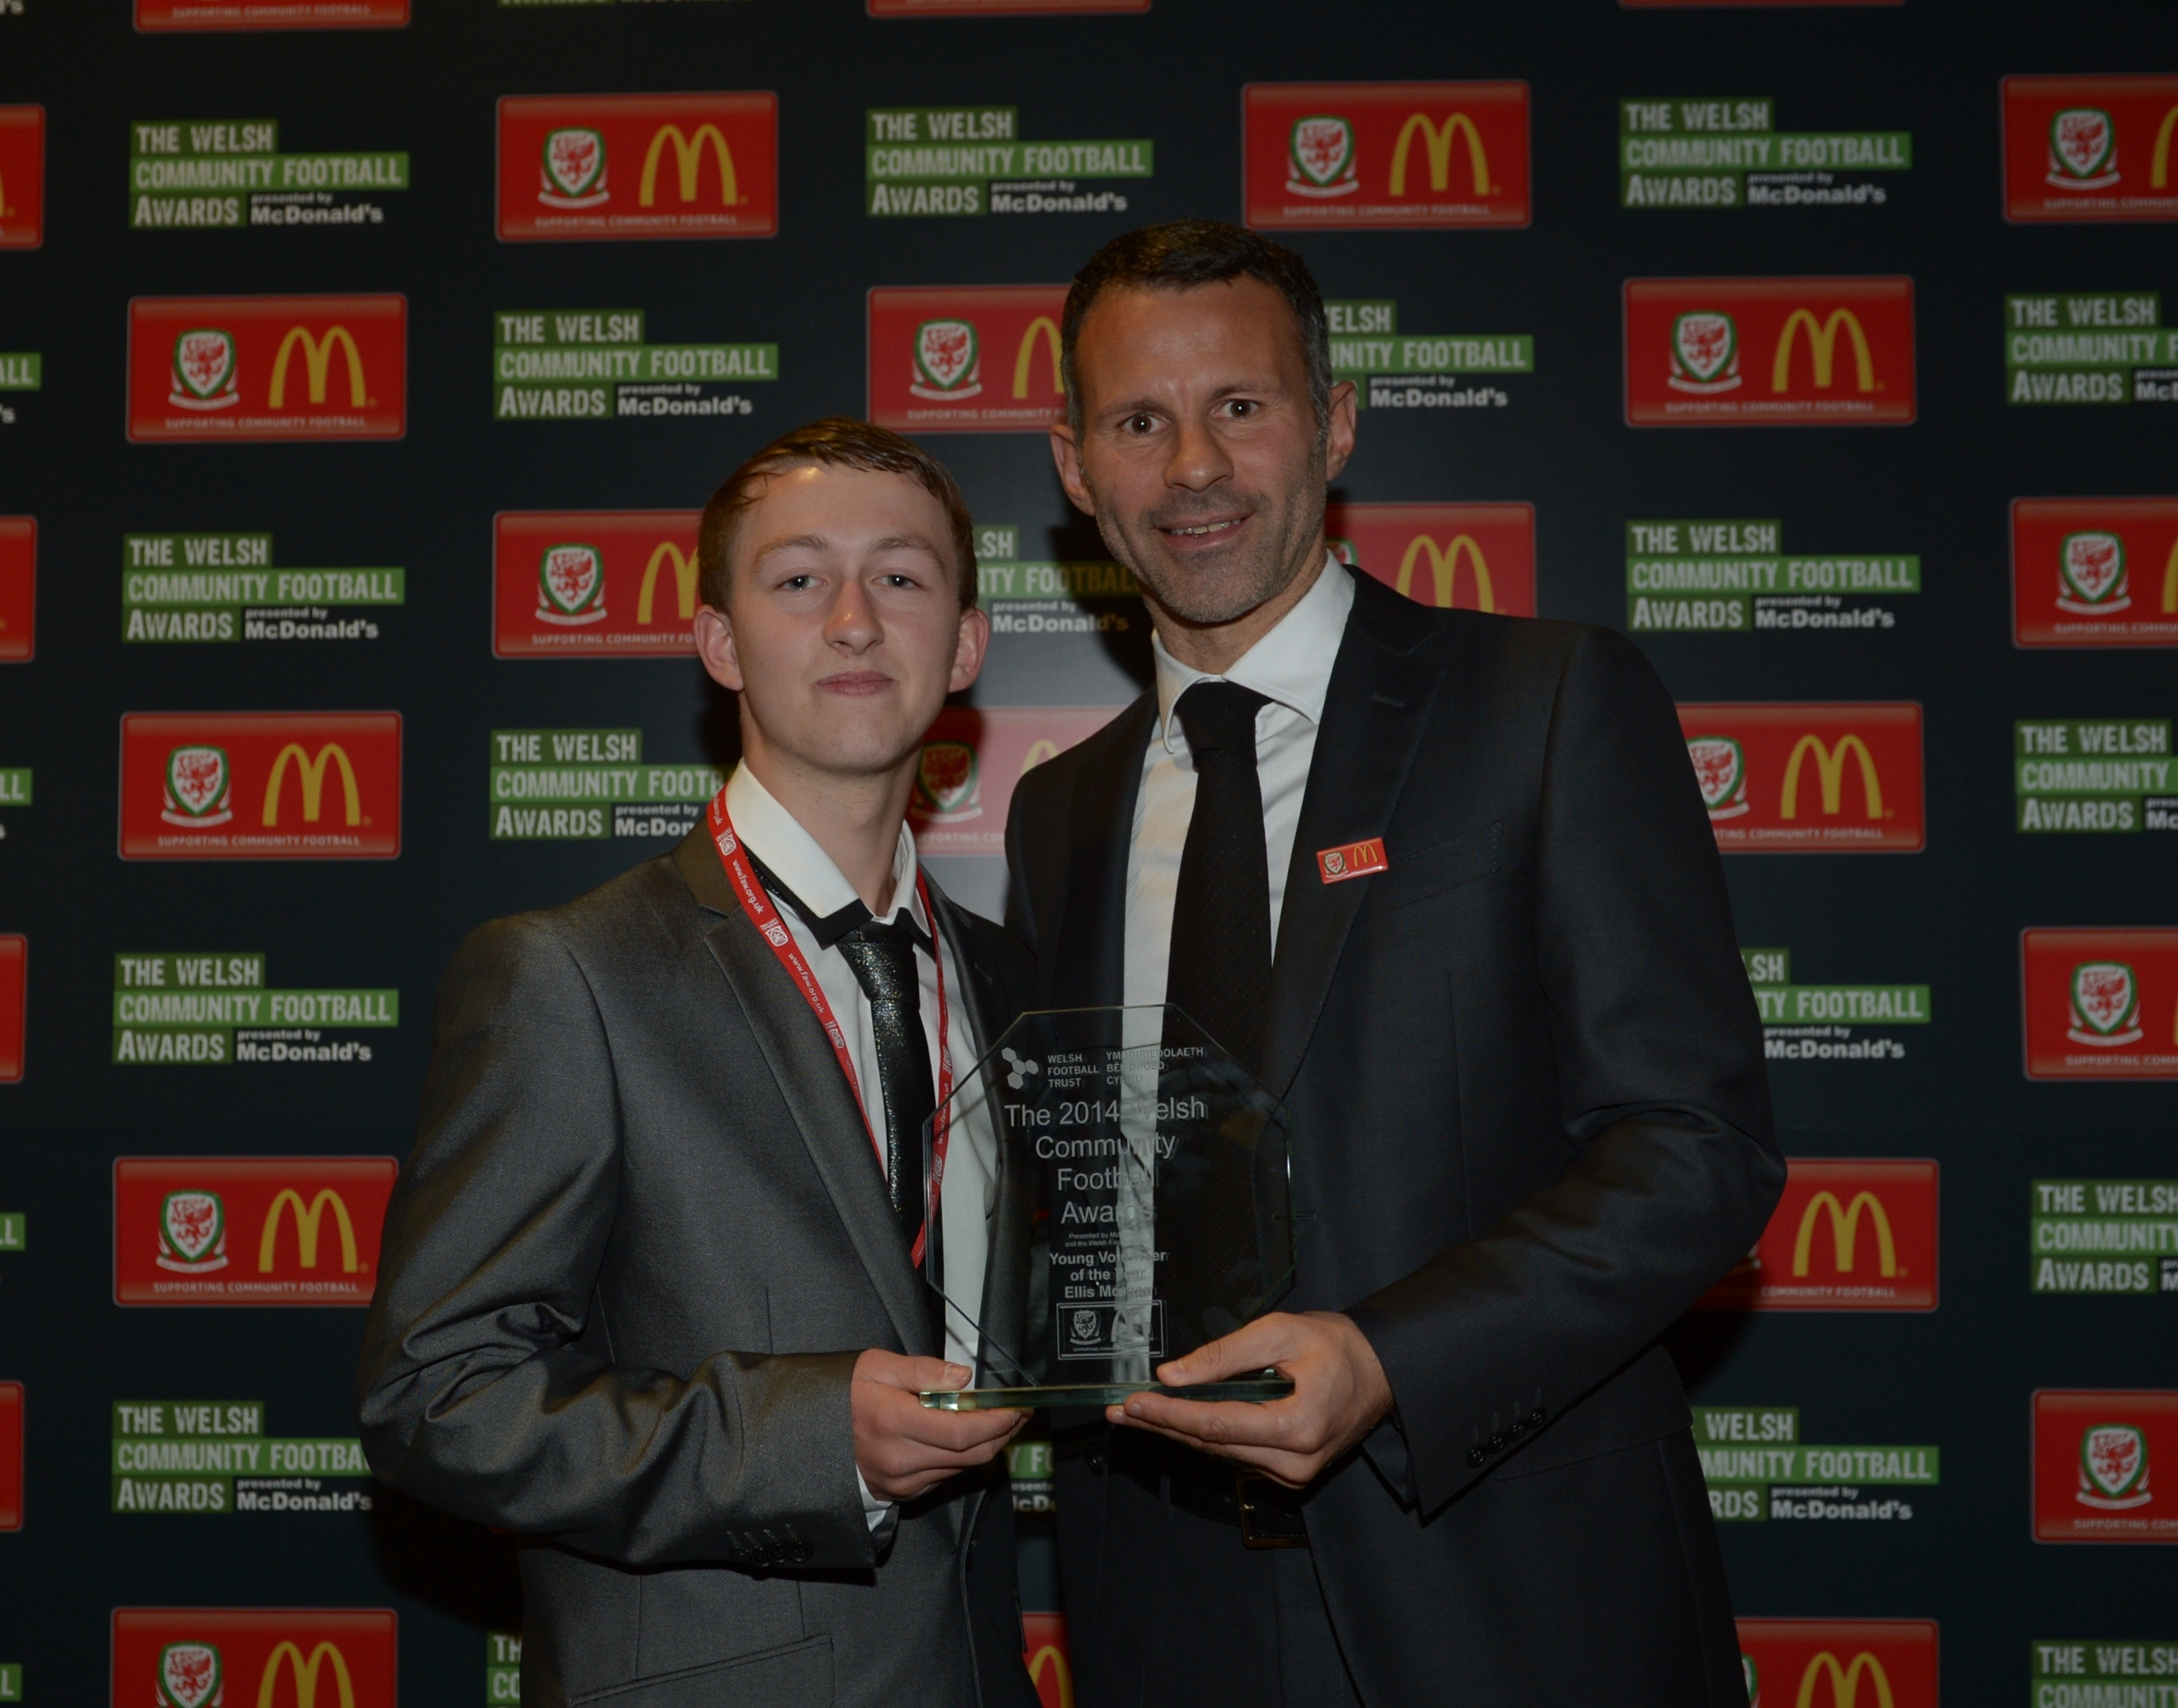 YOUNG EBBW VALE FOOTBALL VOLUNTEER COLLECTS NATIONAL AWARD